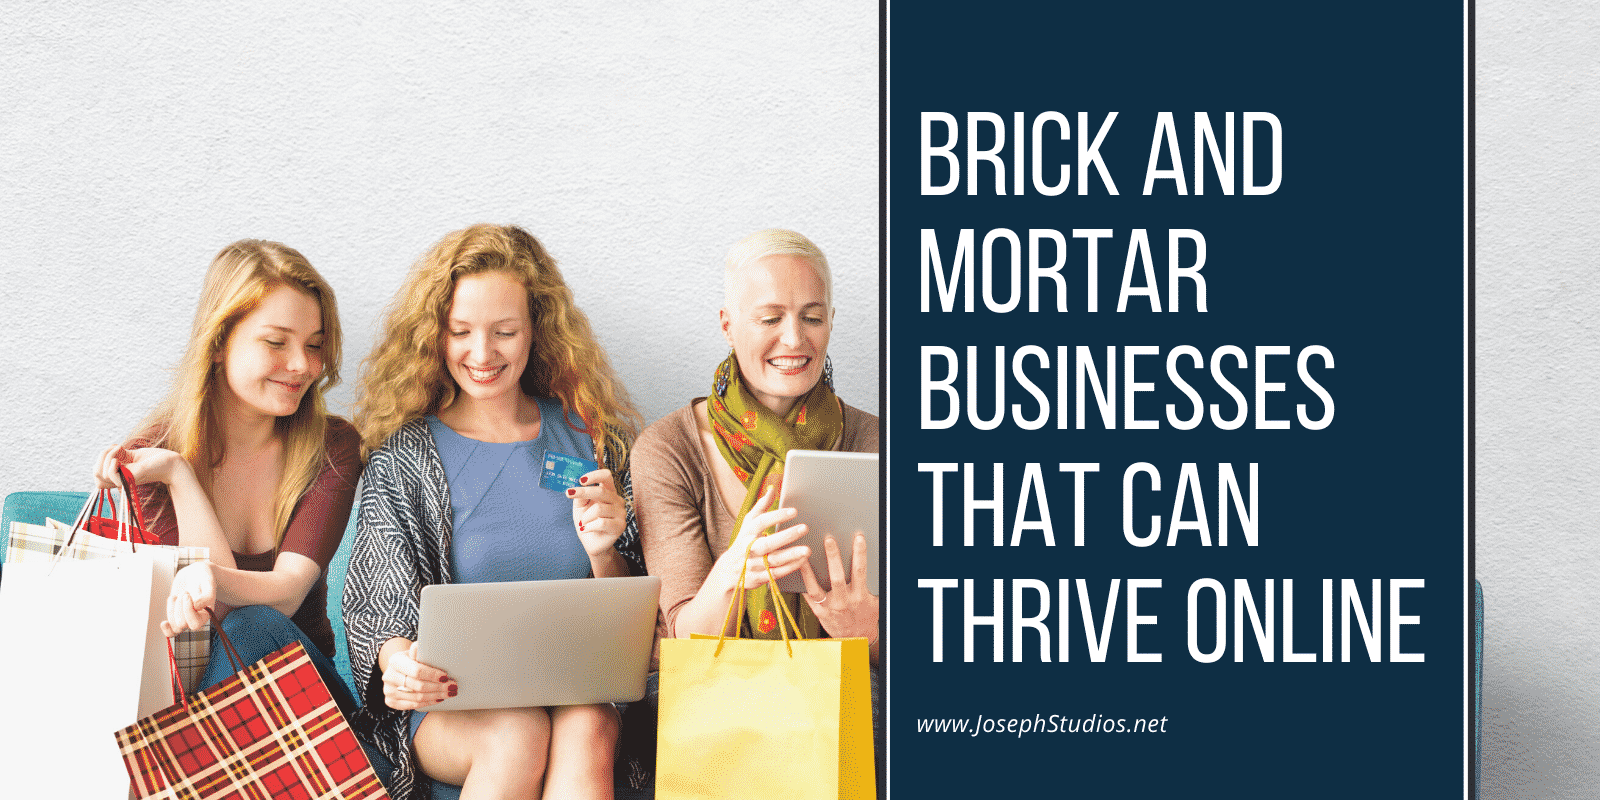 Brick and Mortar Businesses That Can Thrive Online